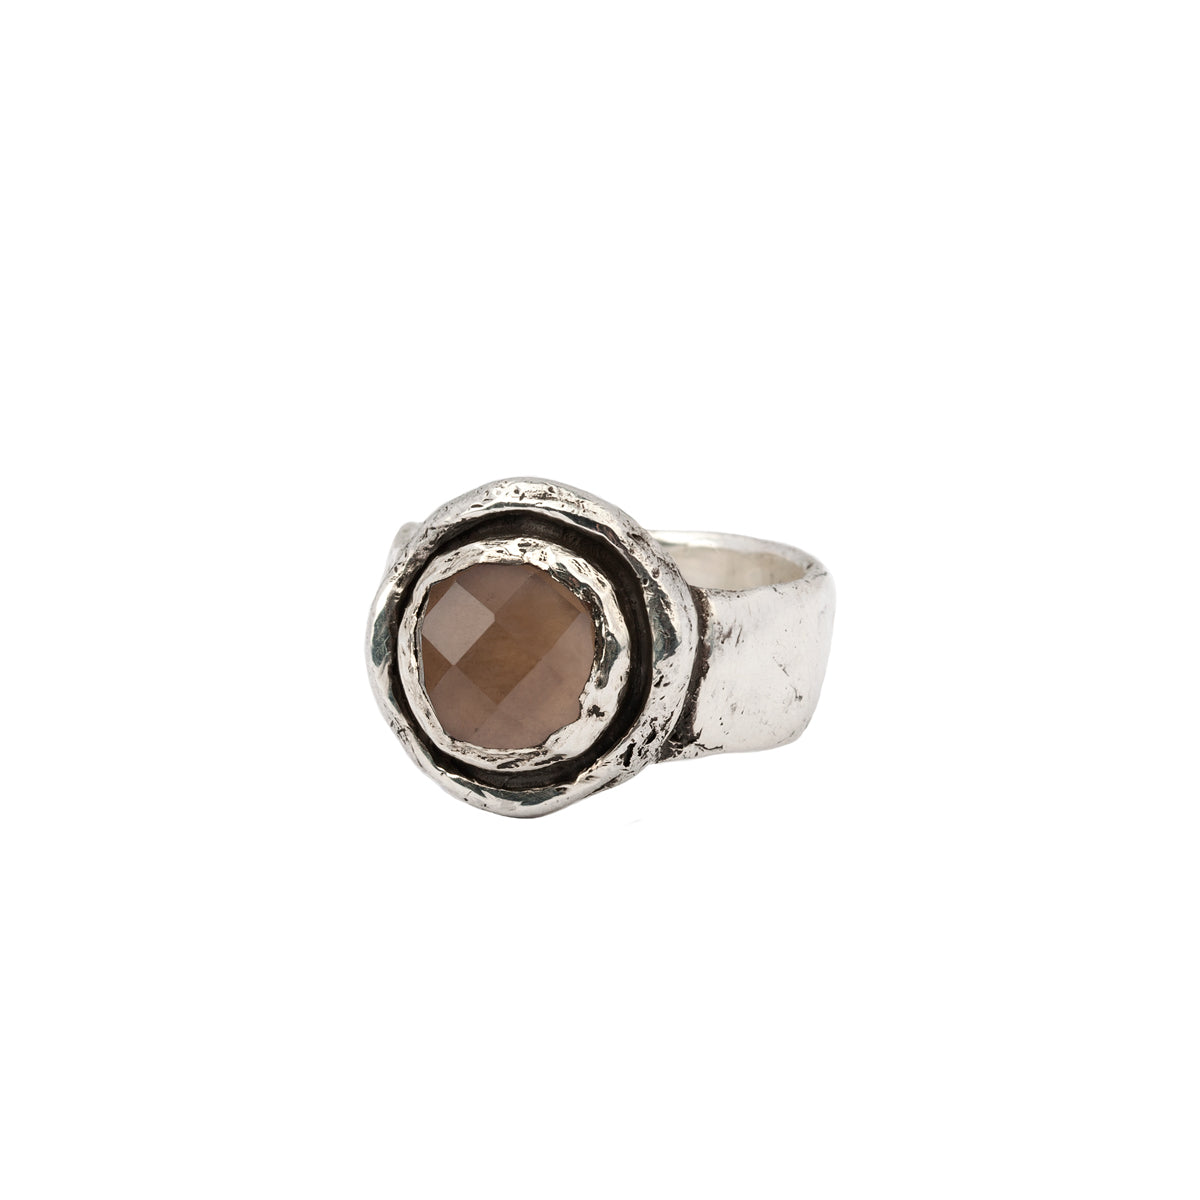 Smoky Quartz Faceted Stone Talisman Ring